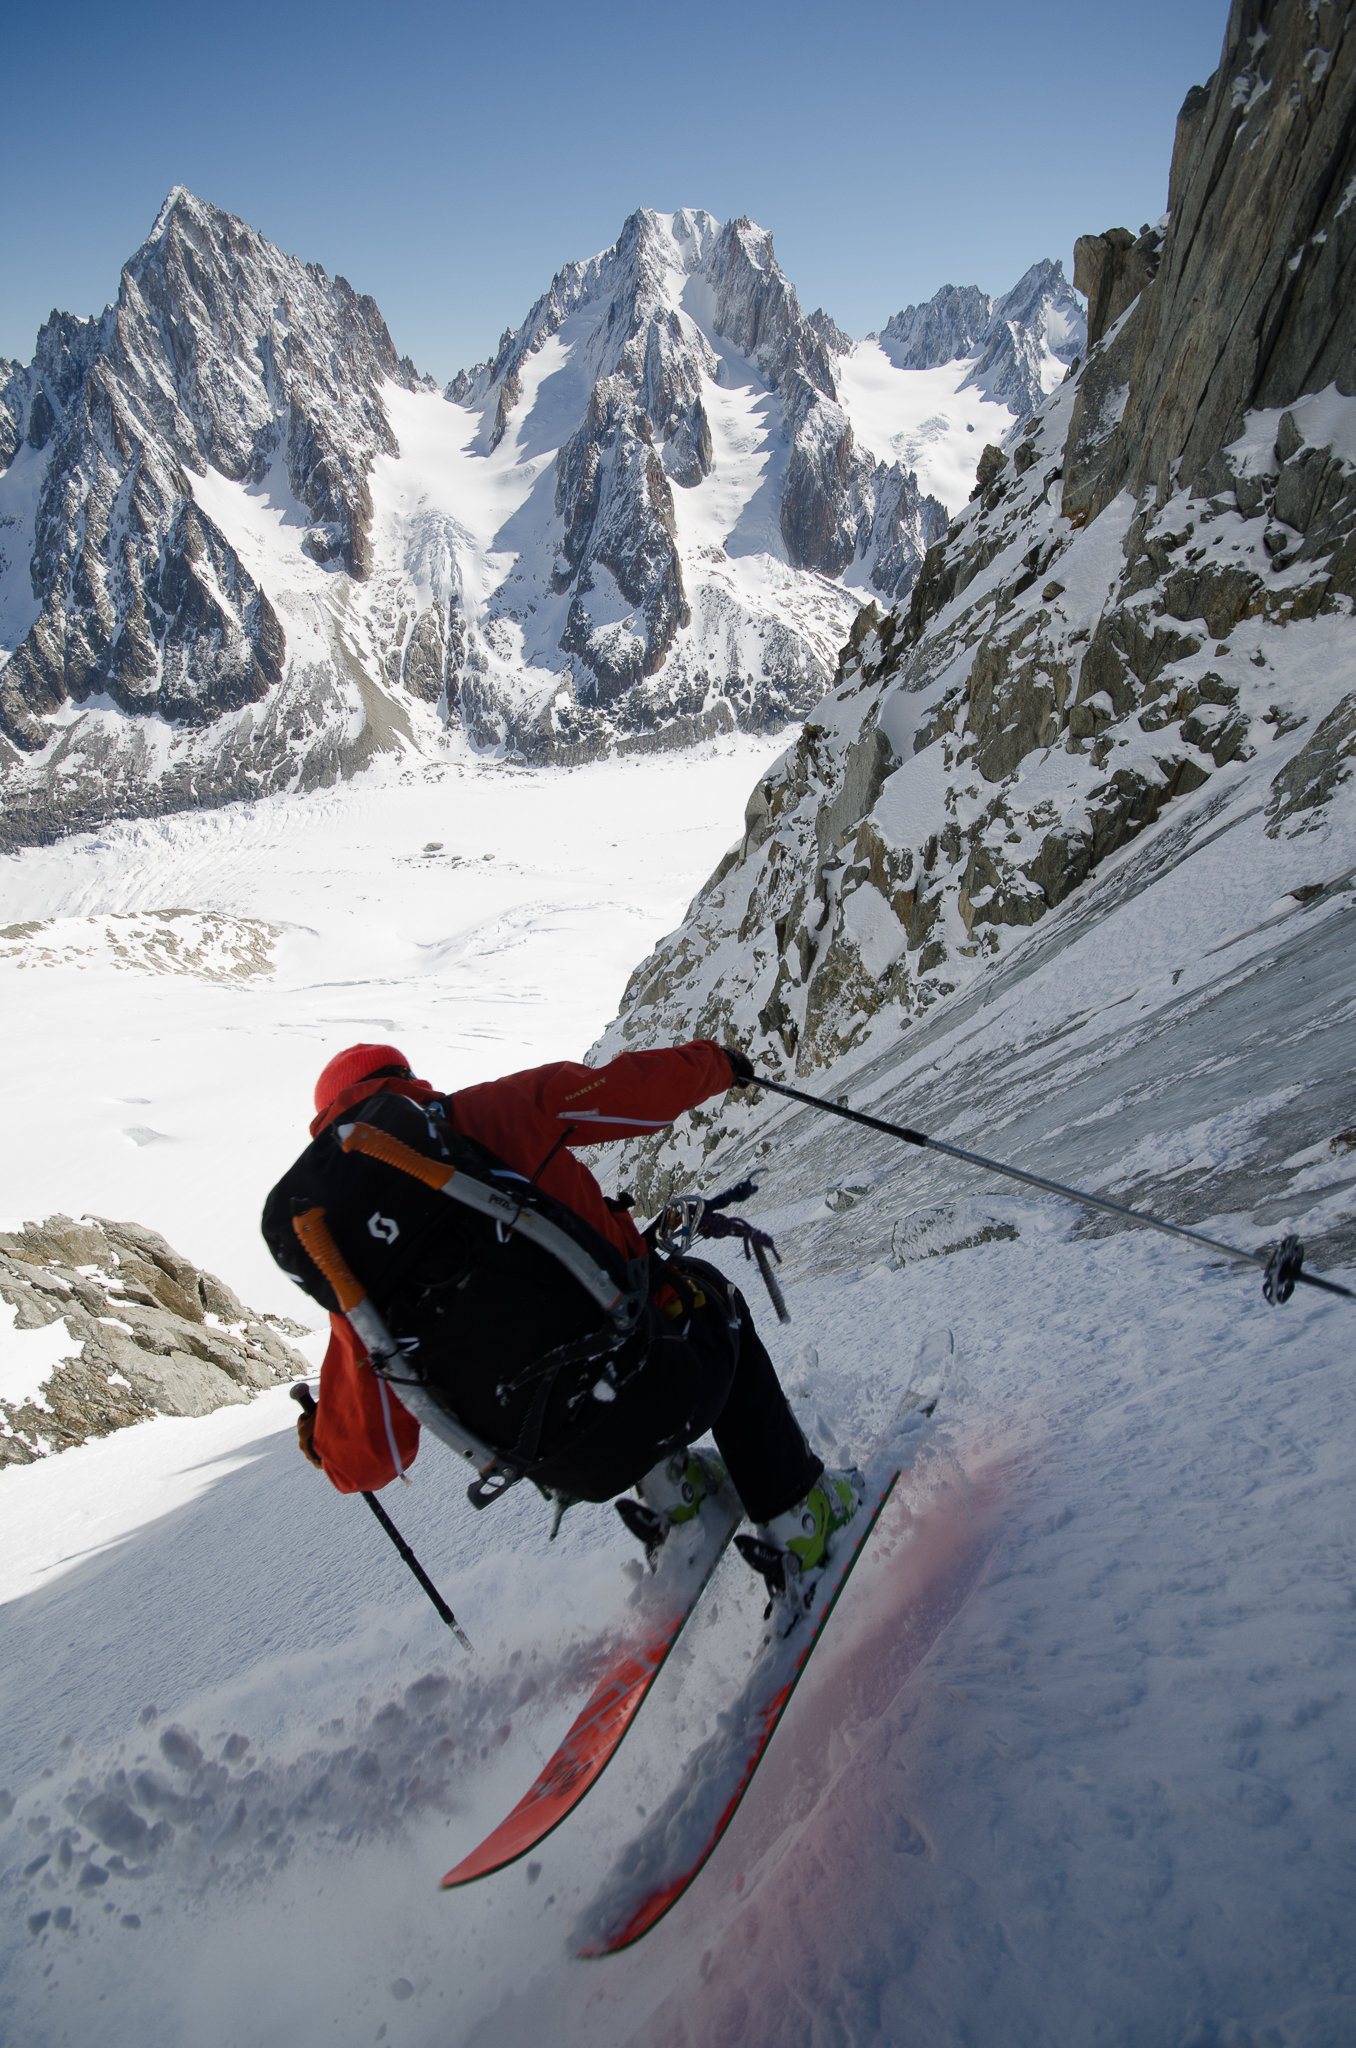 When it comes to high-angle ski photography, few can match Figenshau's skill set. Nathan Wallace on the Tour Ronde in Chamonix, France. PHOTO: Chris Figenshau